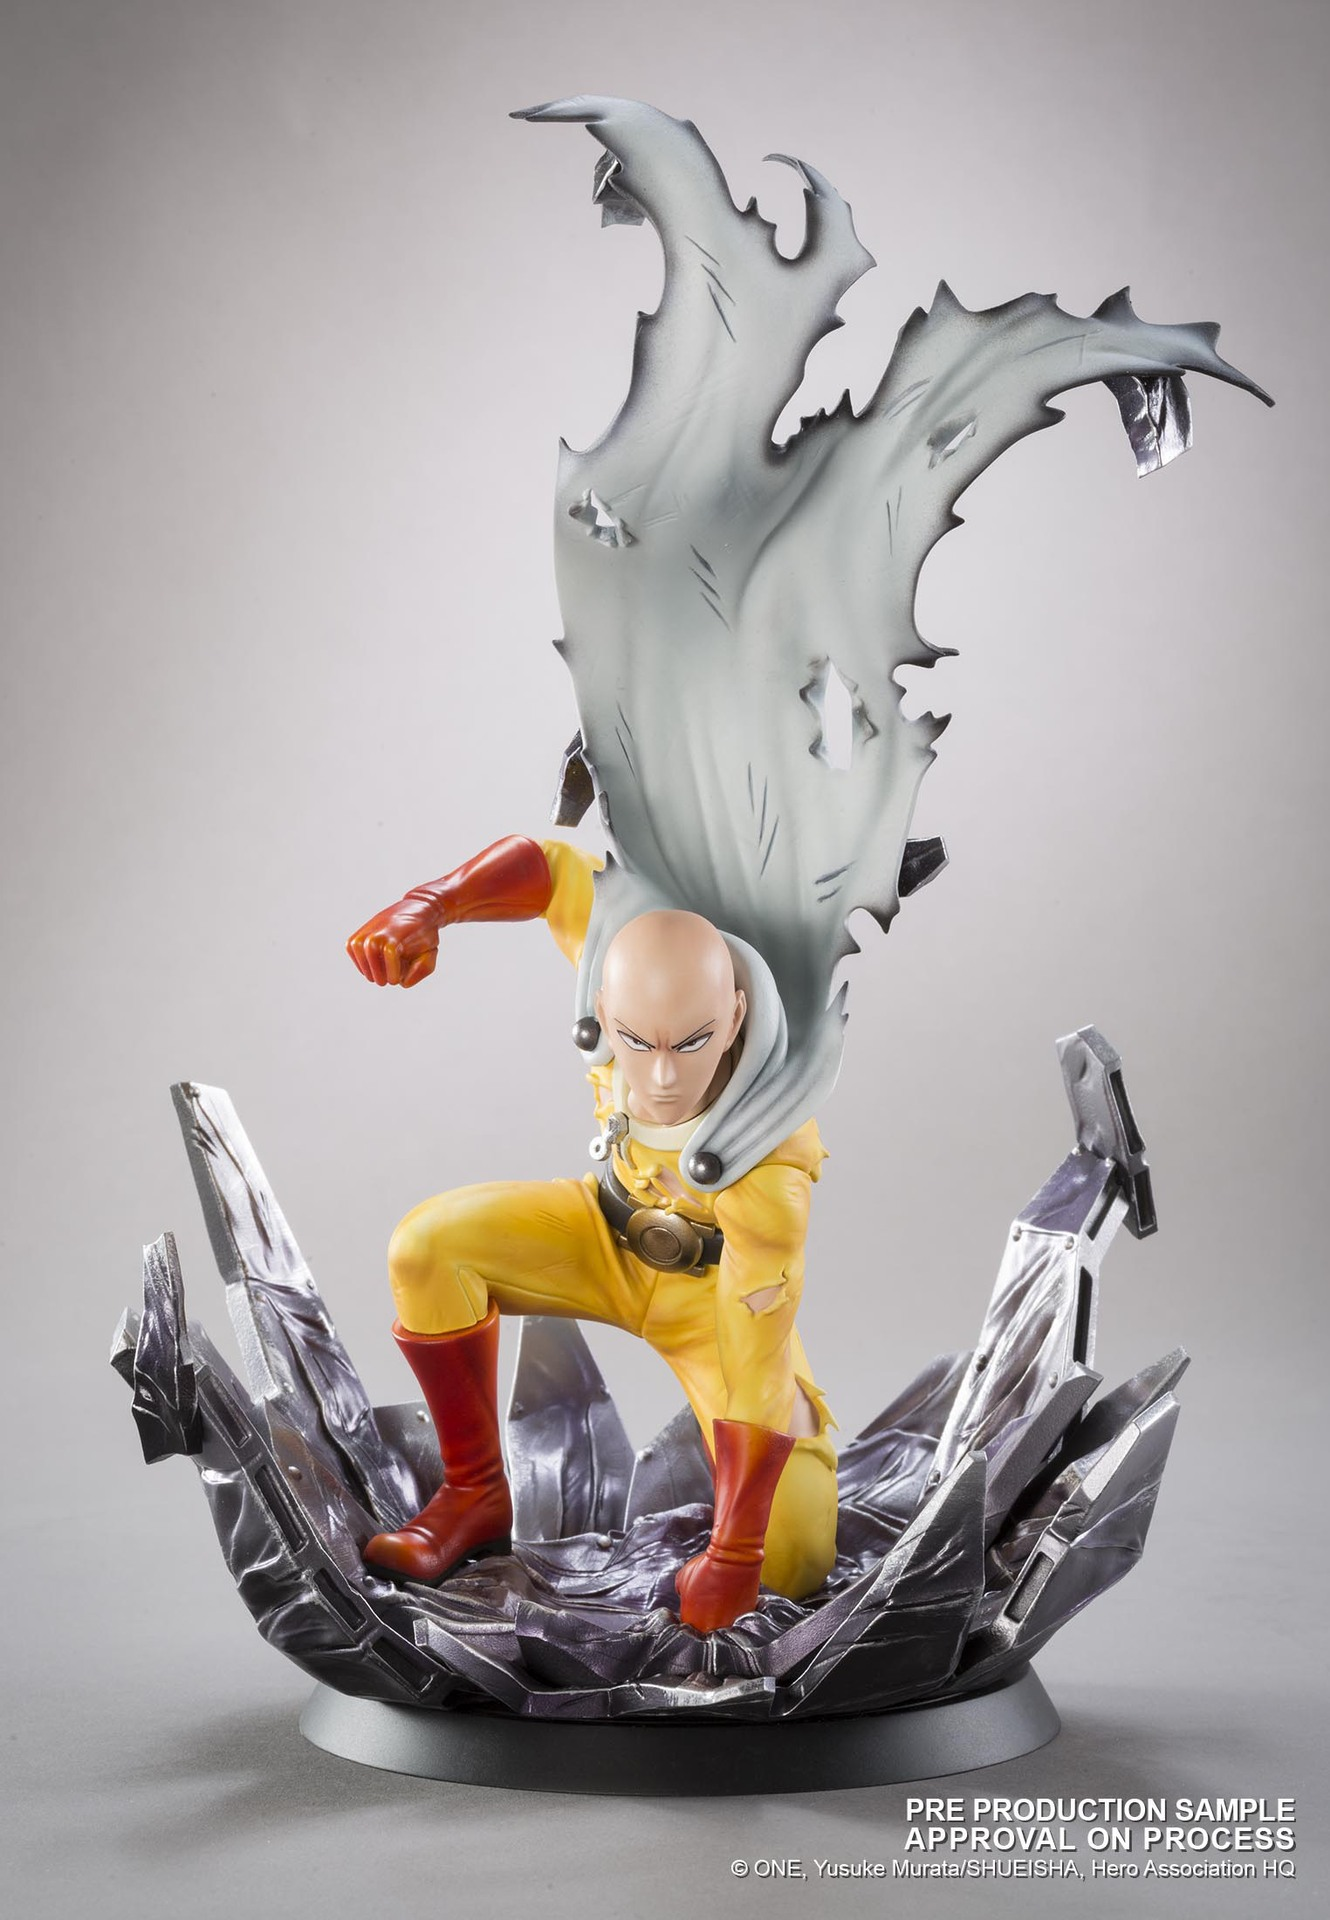 Hot-selling 1pcs 24CM pvc Japanese anime figure Tsume T ONE PUNCH-MAN Saitama action figure collectible model toys brinquedos